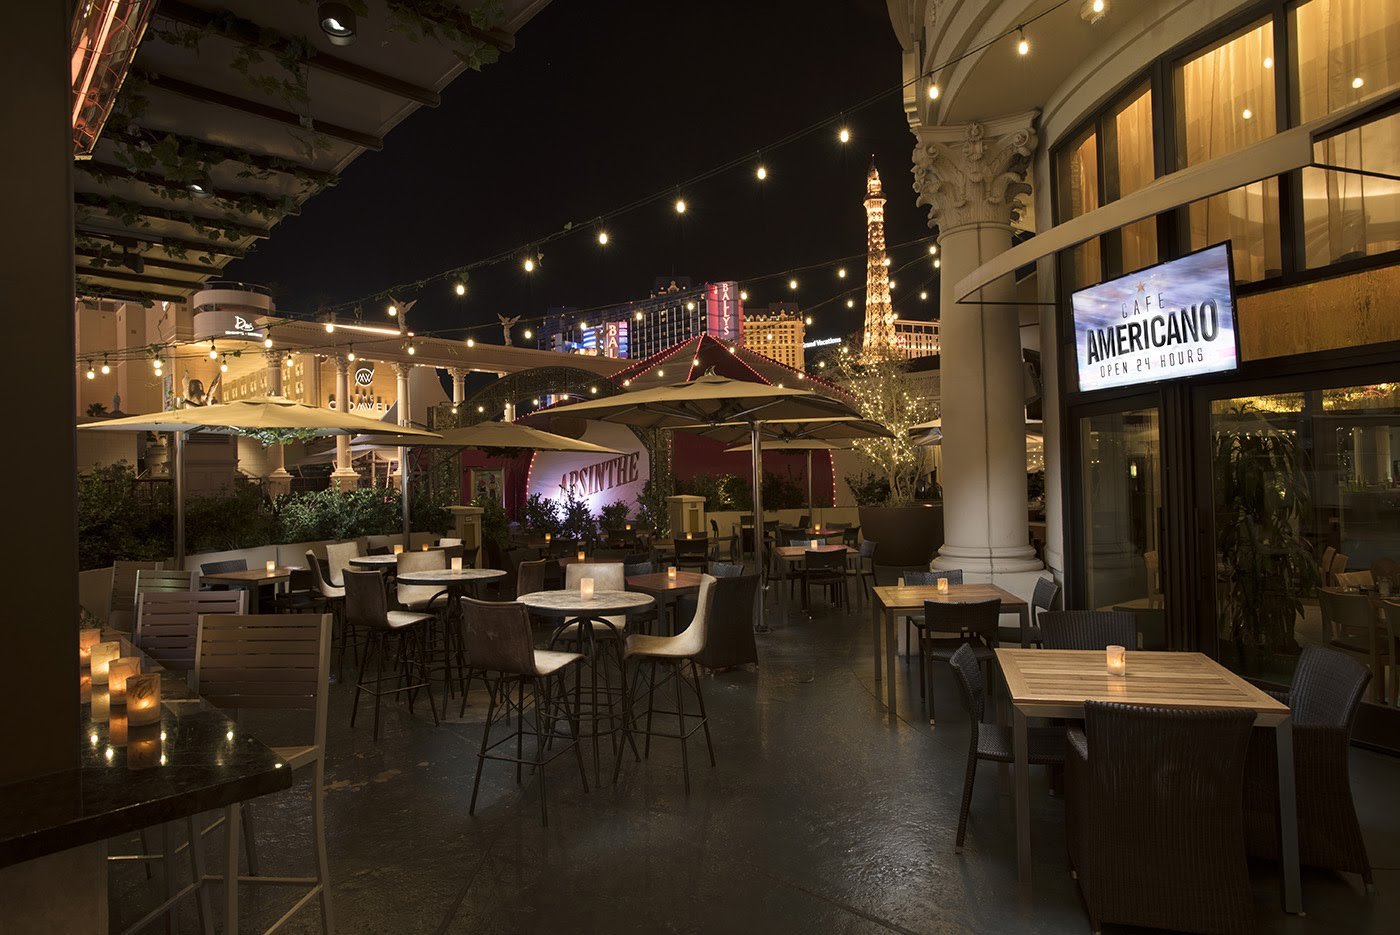 Cafe Americano Open 24 hours at Caesars Palace